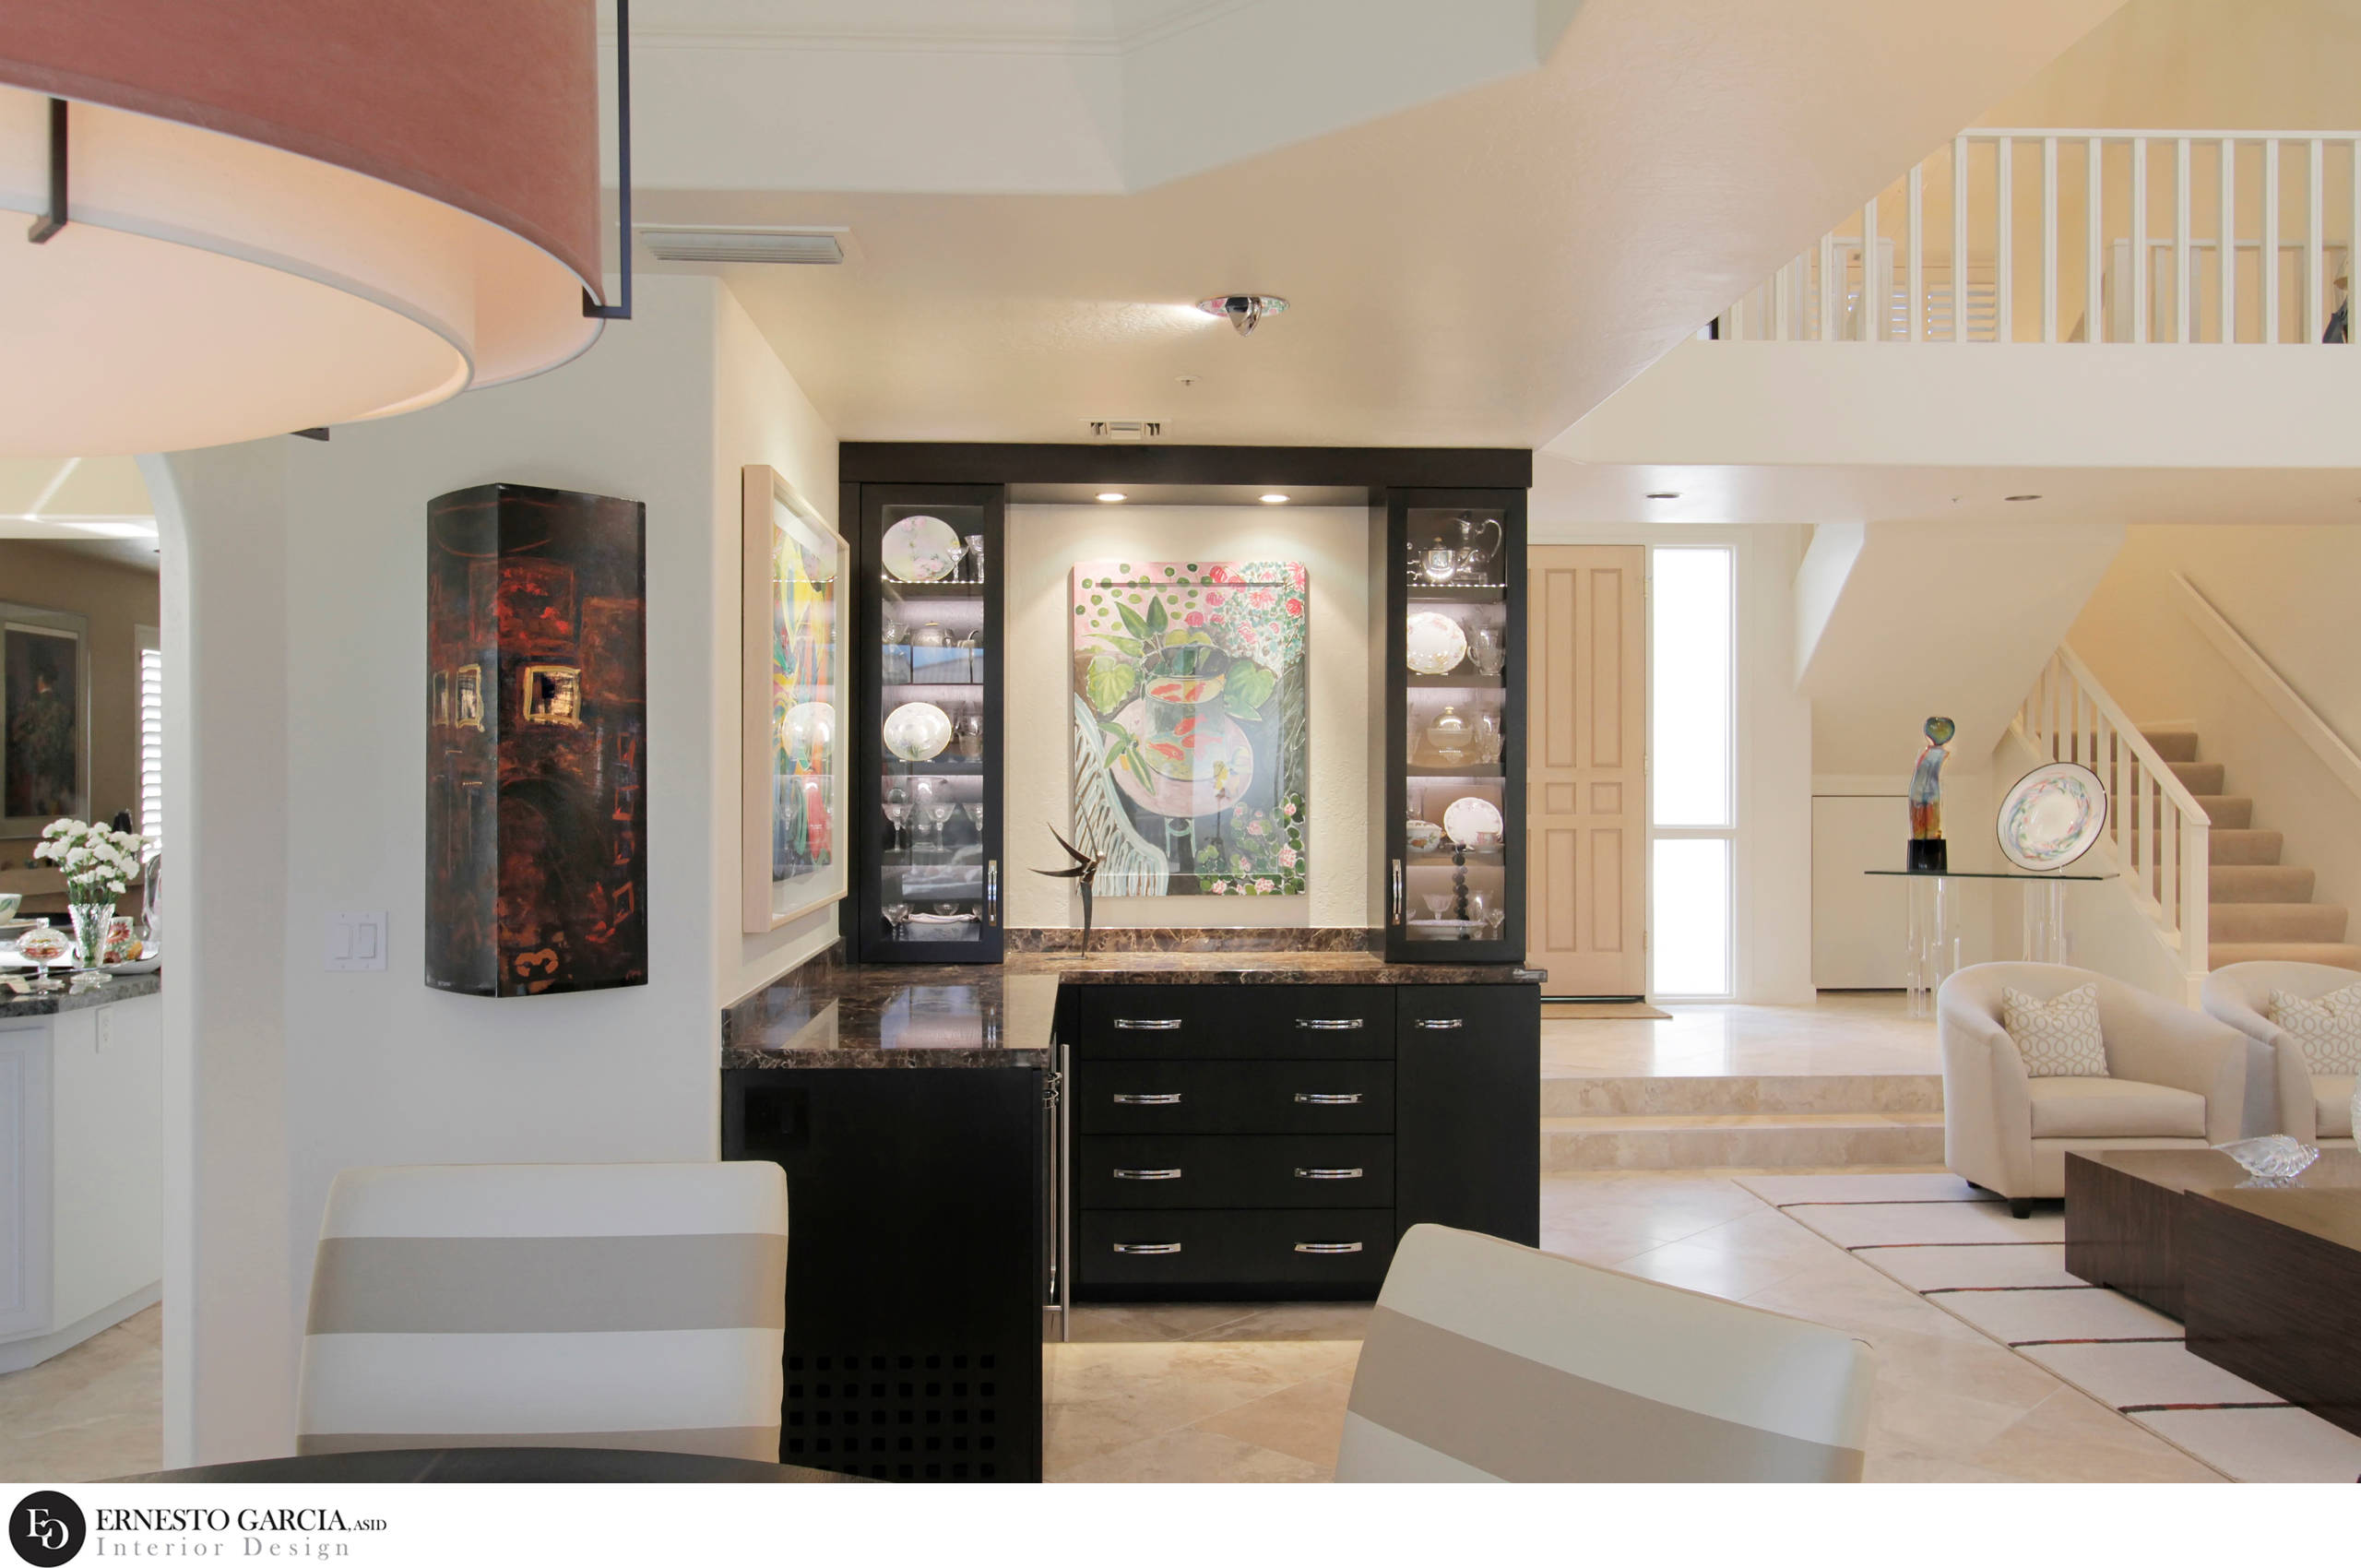 2012 FIRST PLACE WINNER * ASID AWARD - View of Buffet from Dining Table